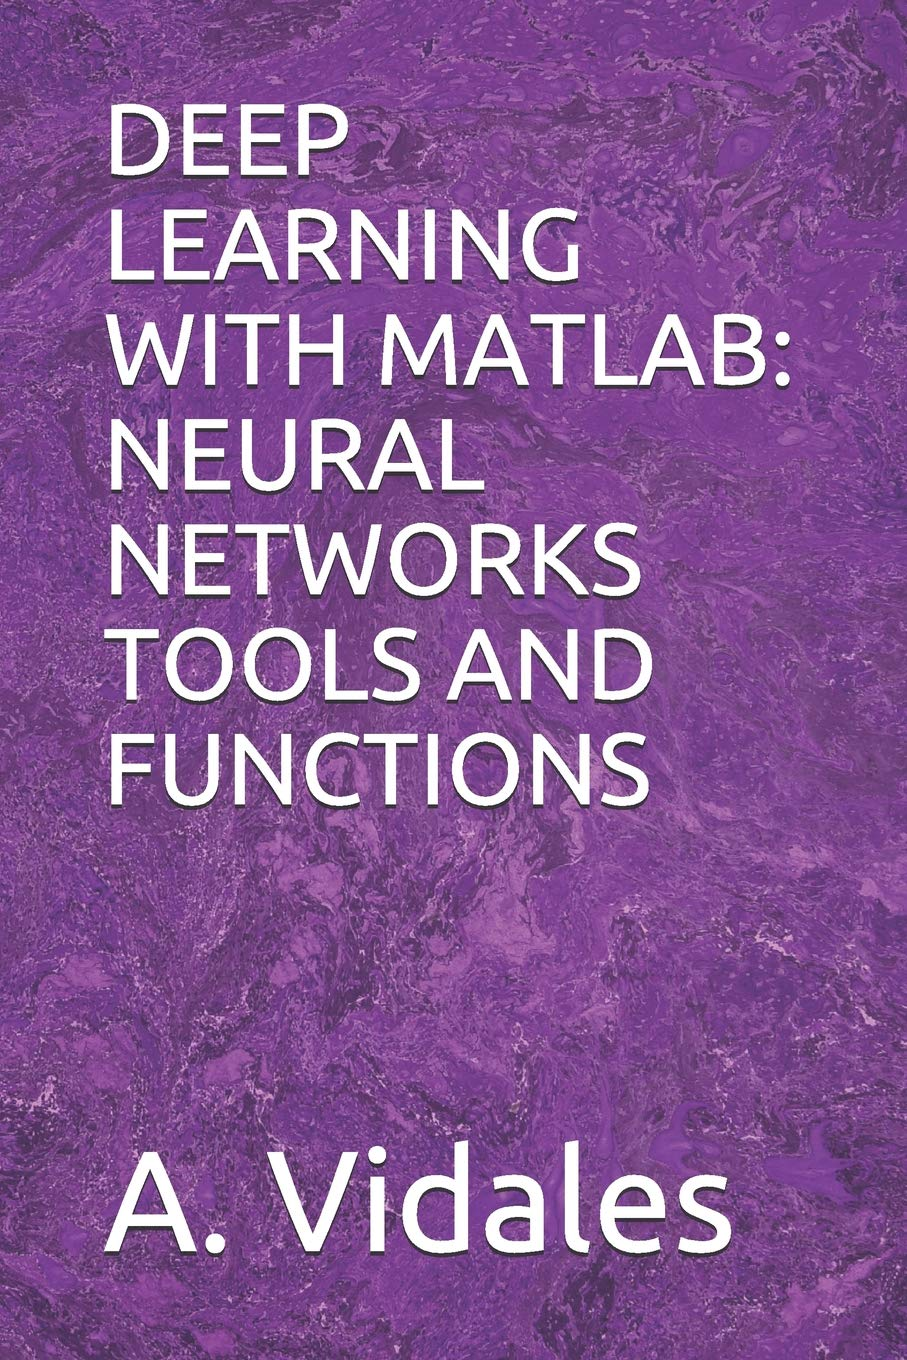 DEEP LEARNING WITH MATLAB: NEURAL NETWORKS TOOLS AND